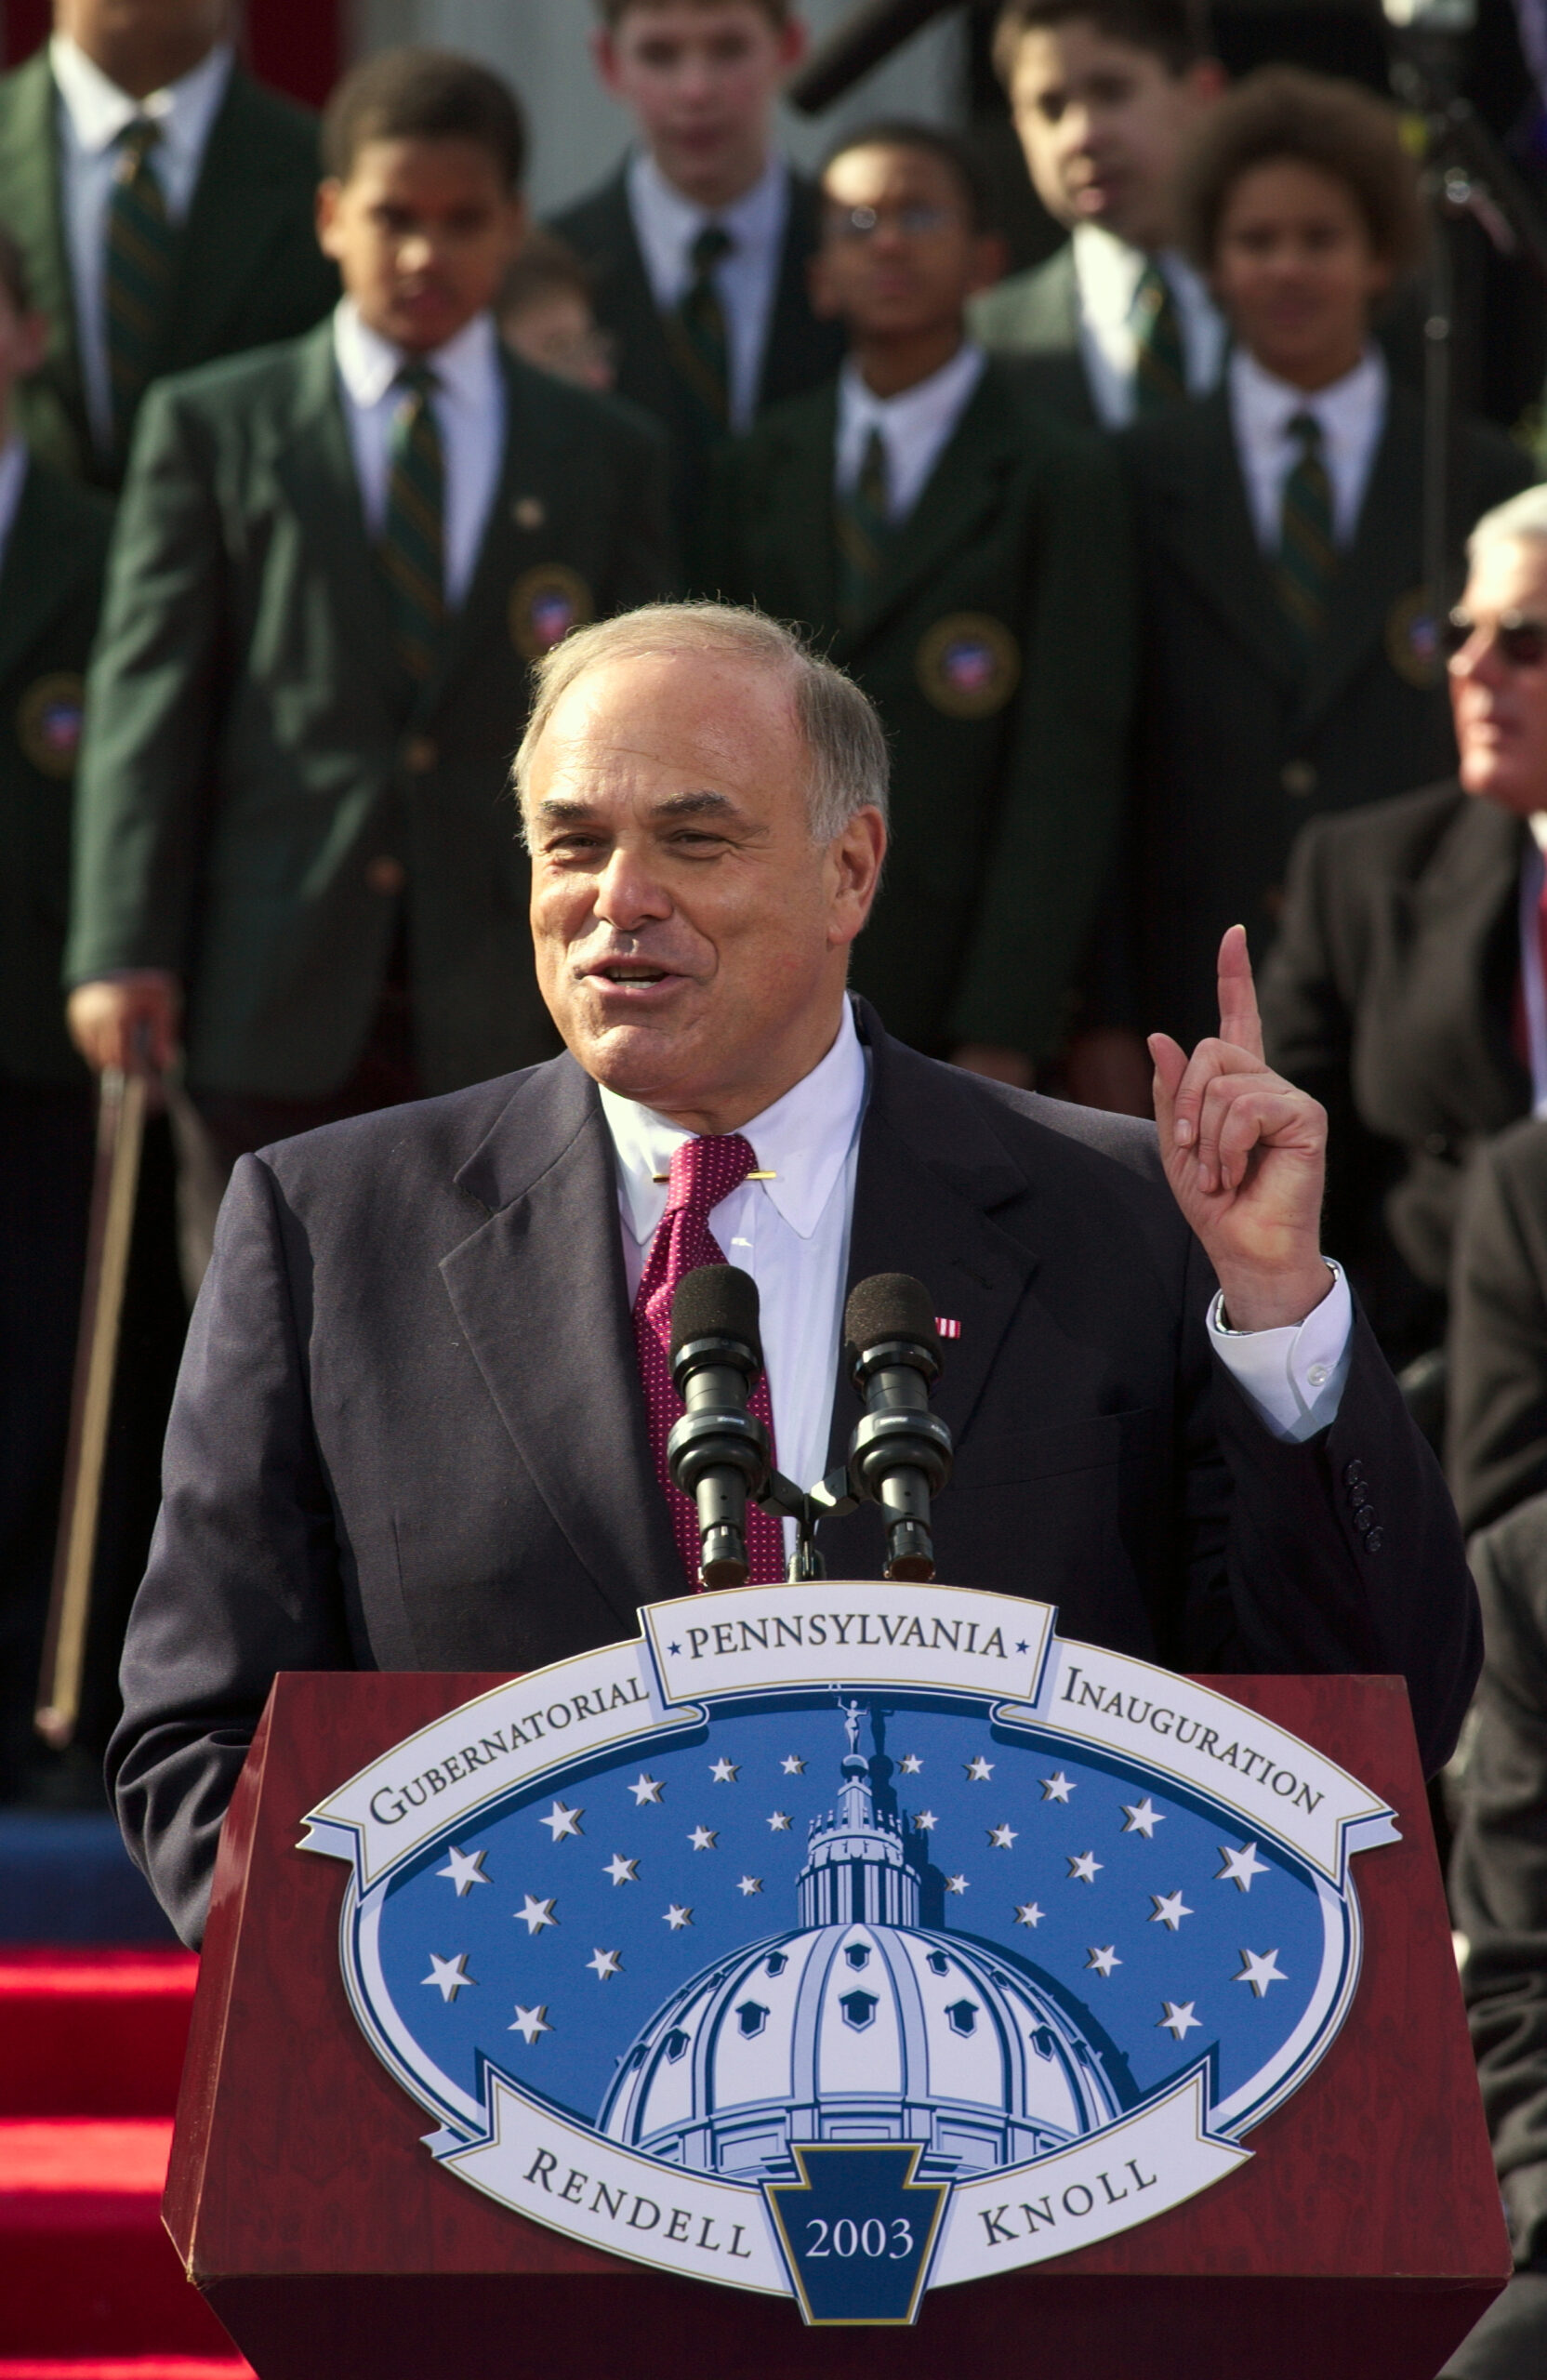 Governor Ed Rendell at podium